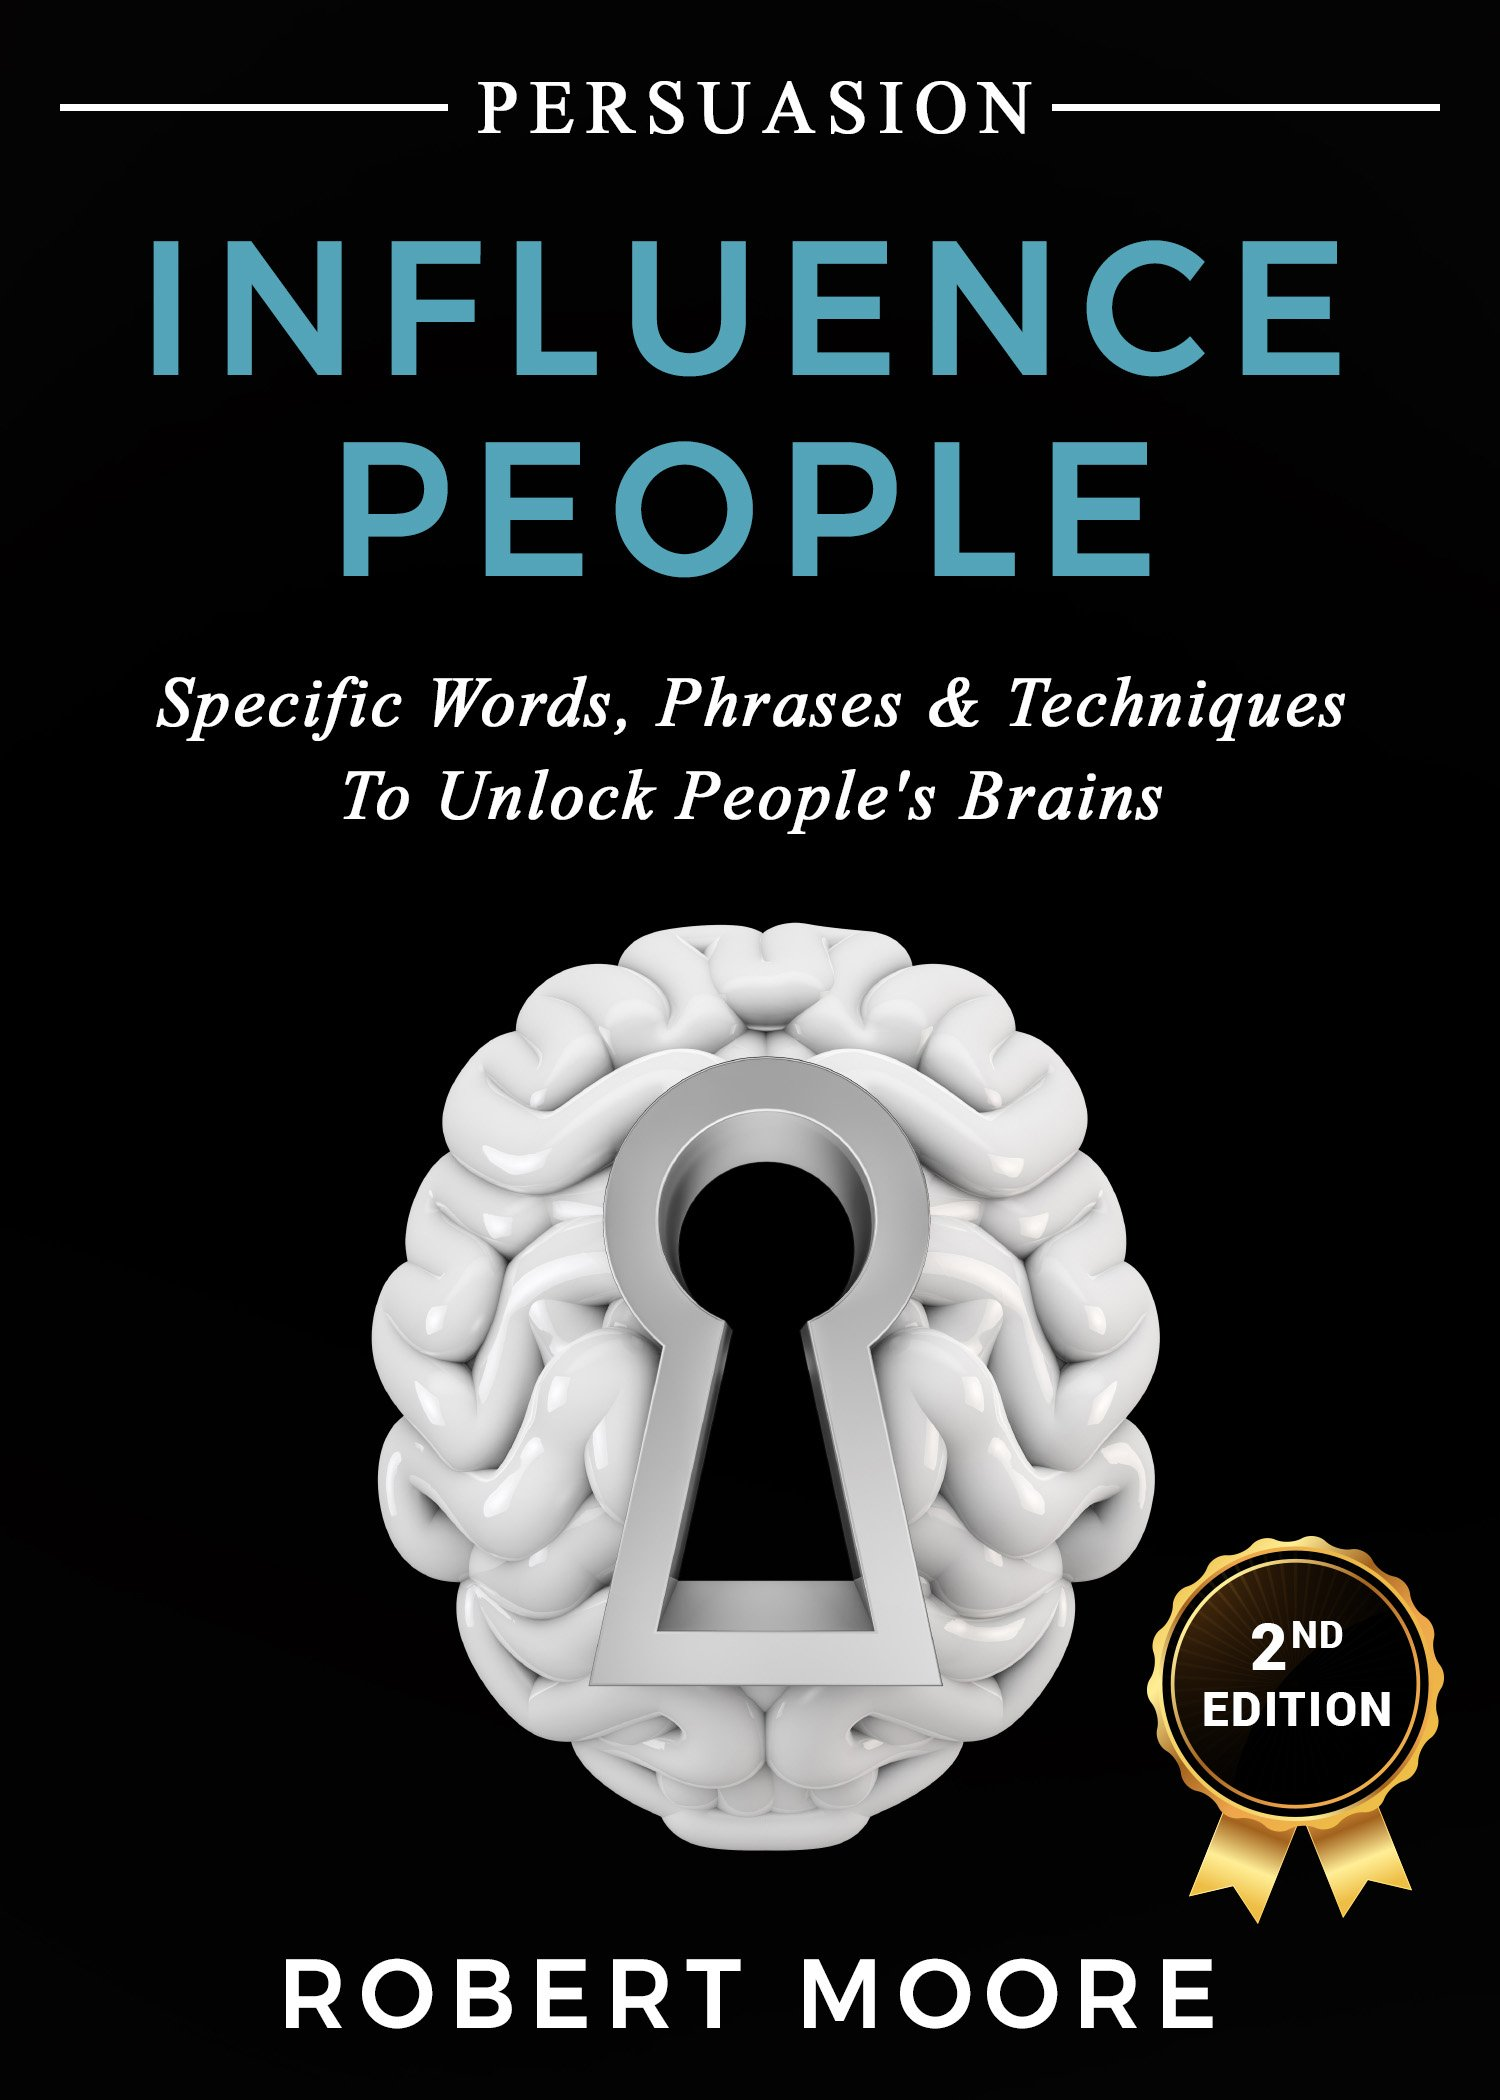 Persuasion: Influence People - Specific Words, Phrases & Techniques to Unlock People's Brains (Persuasion, Influence, Communication Skills)